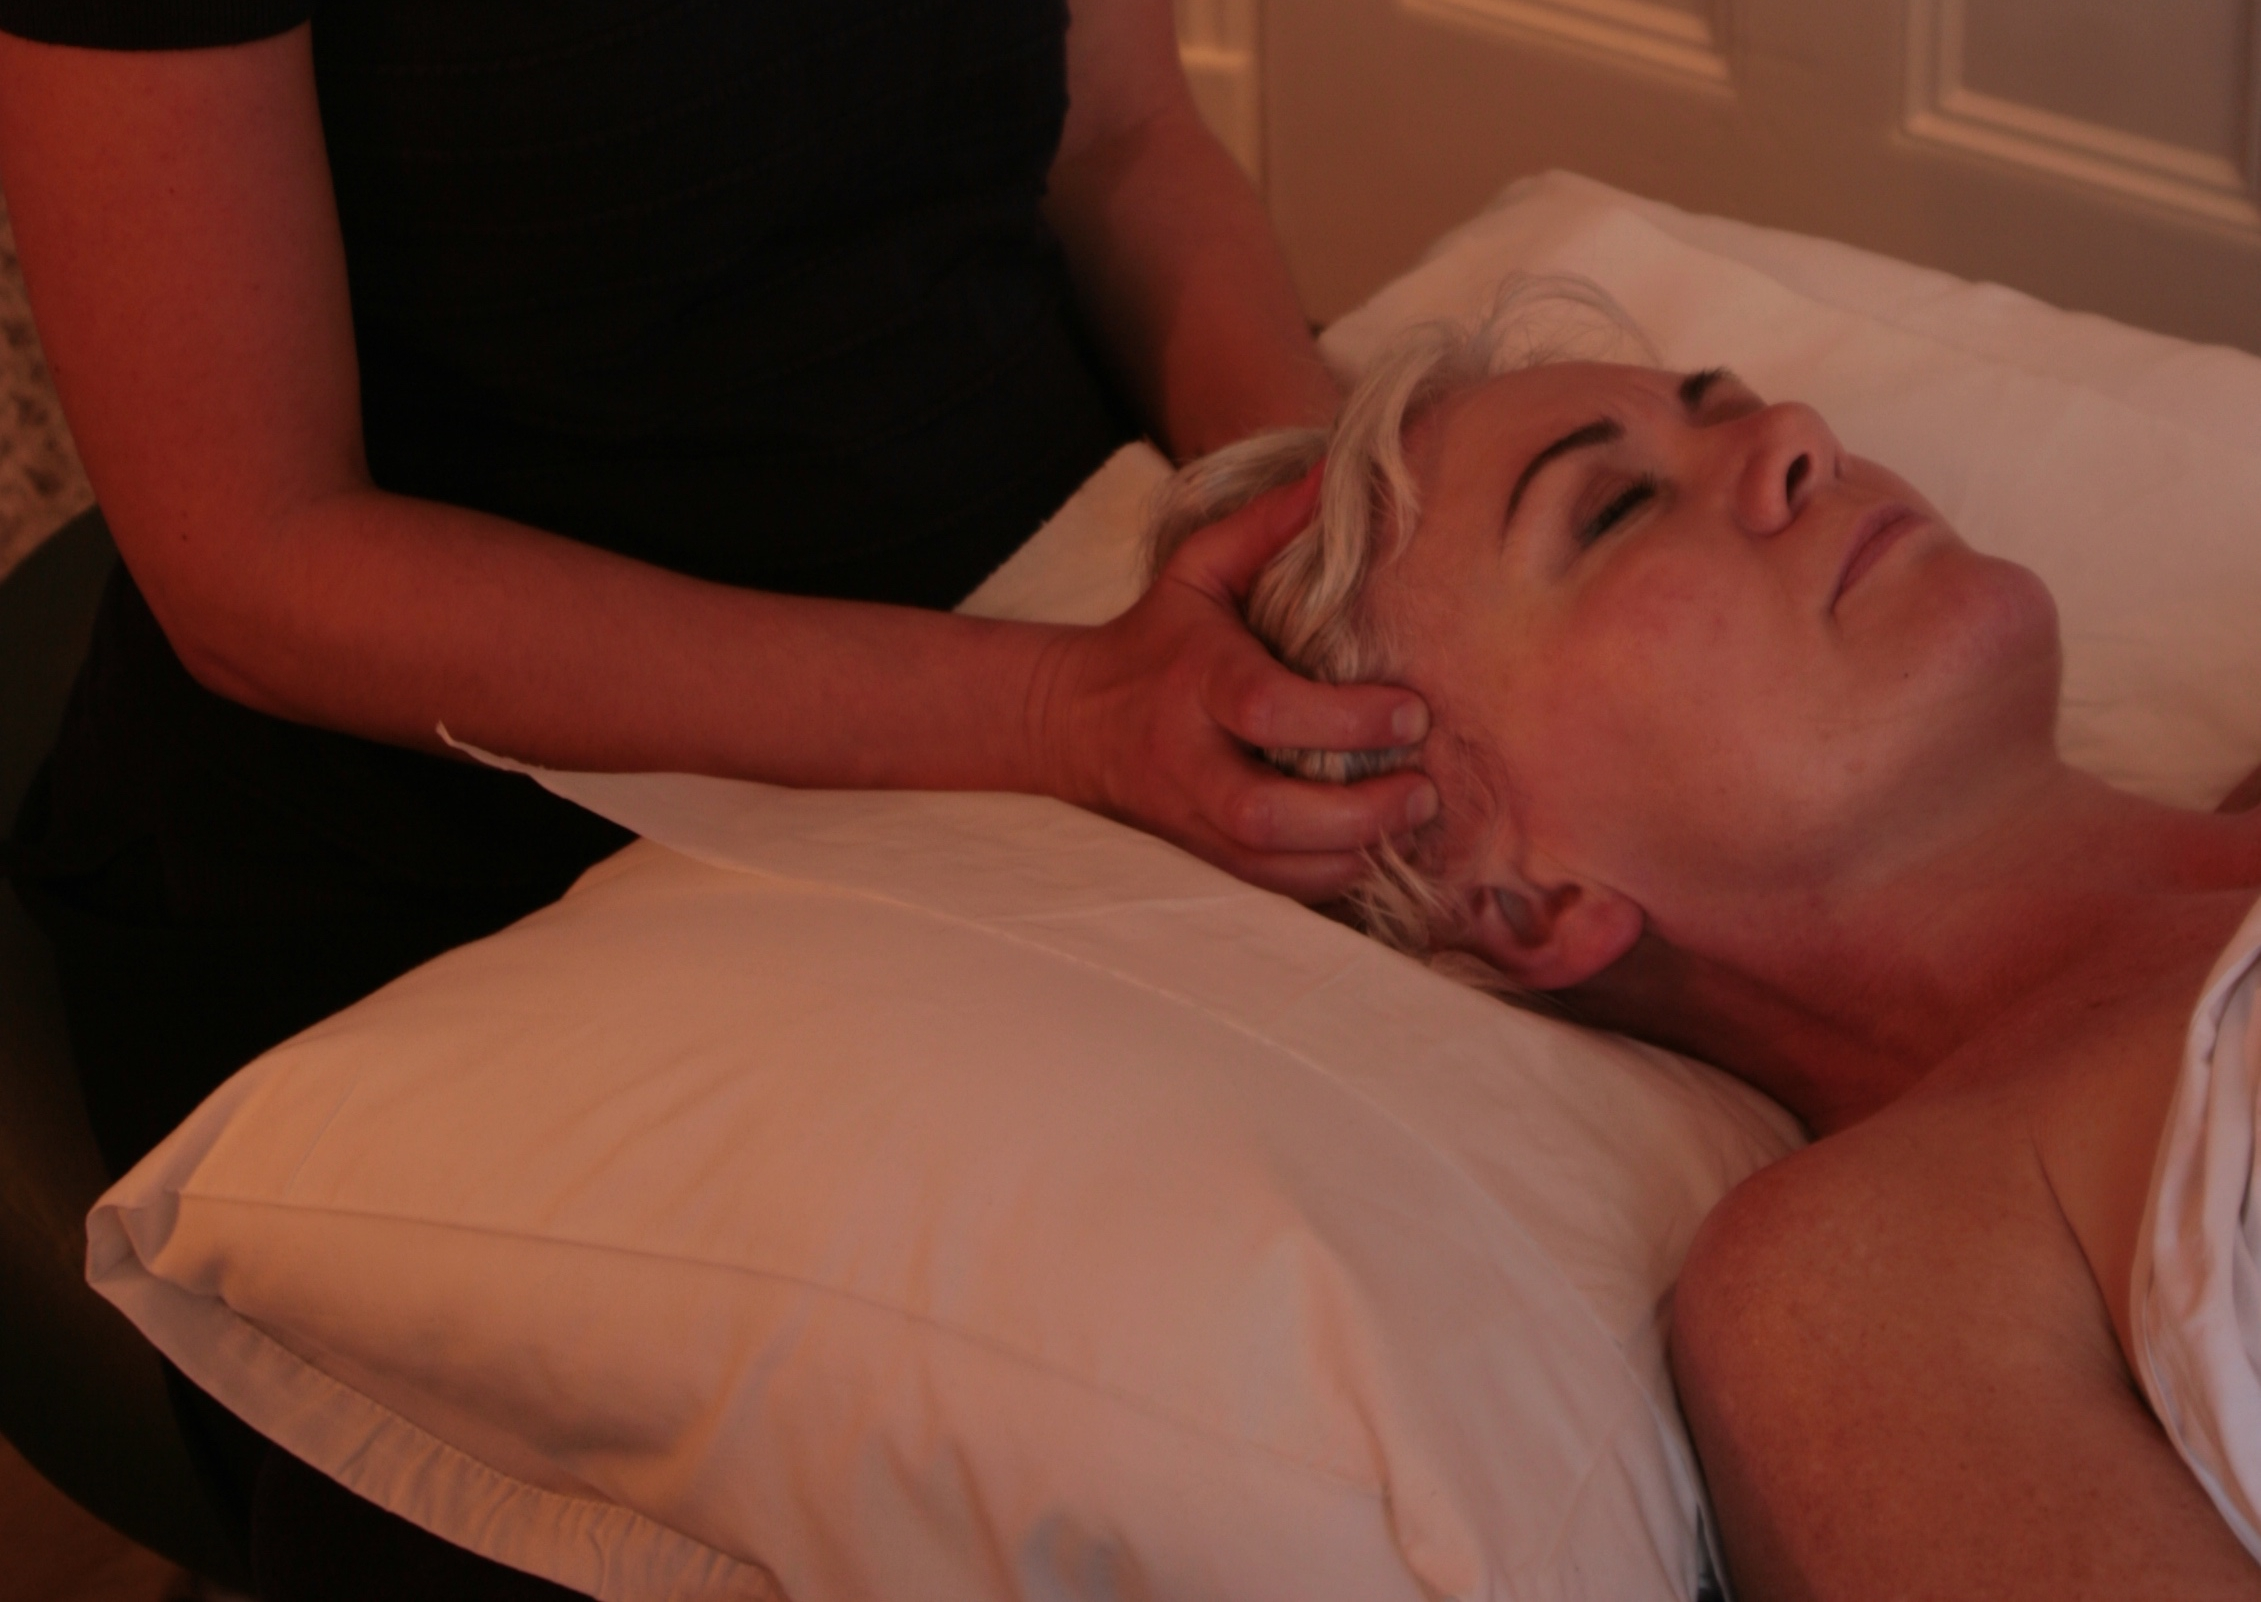 Massage is one way to allow the body to rest, repair and renew its strength